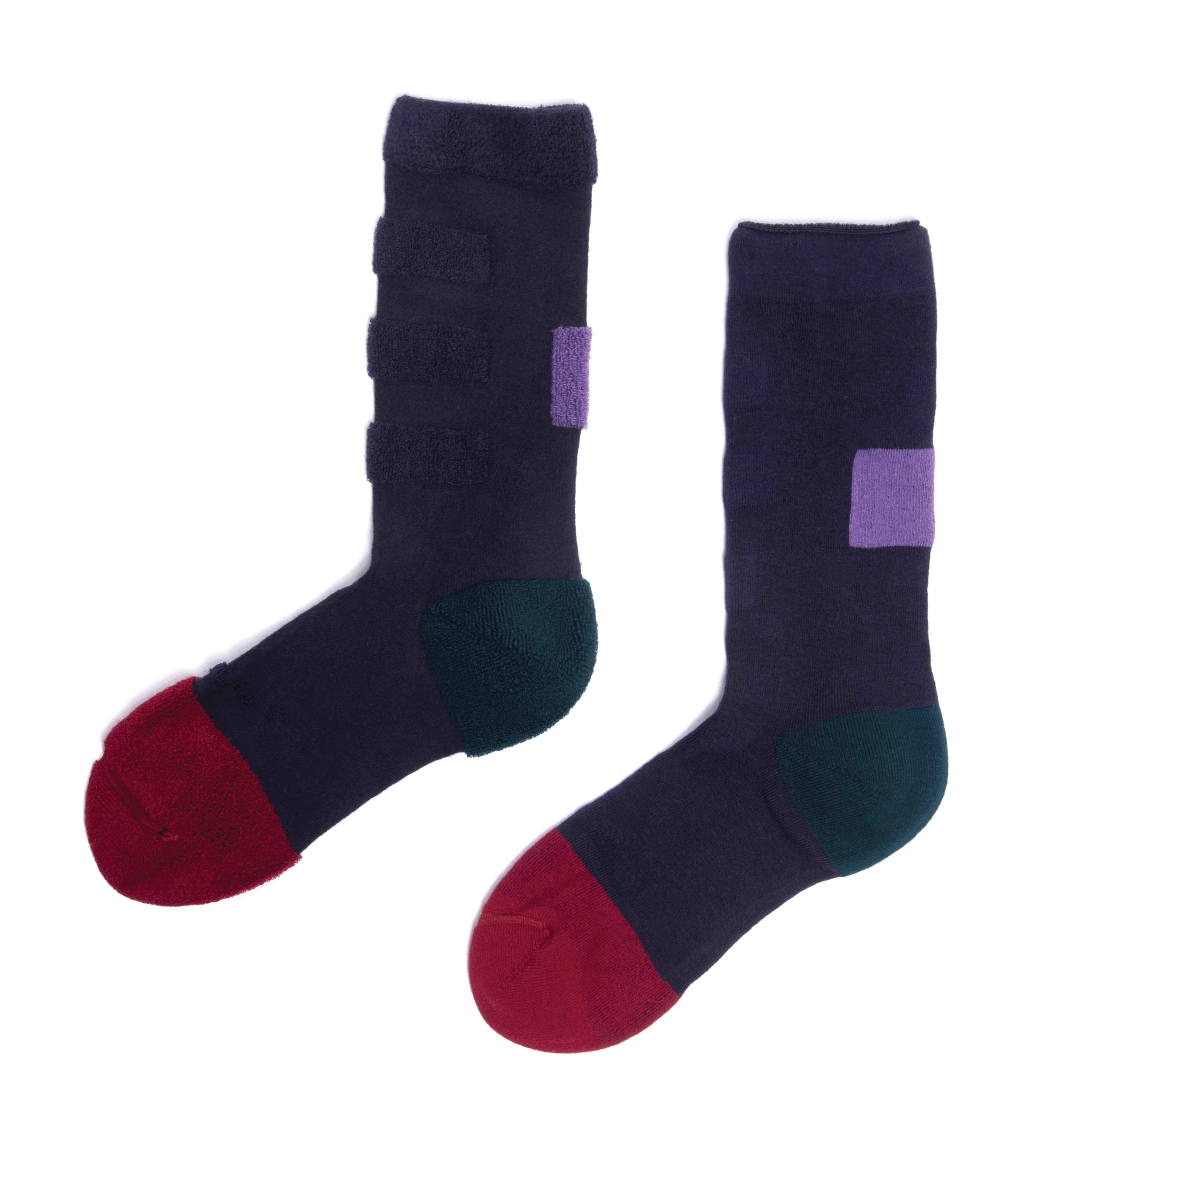 My Inner Beauty - Minda Dark Blue Socks